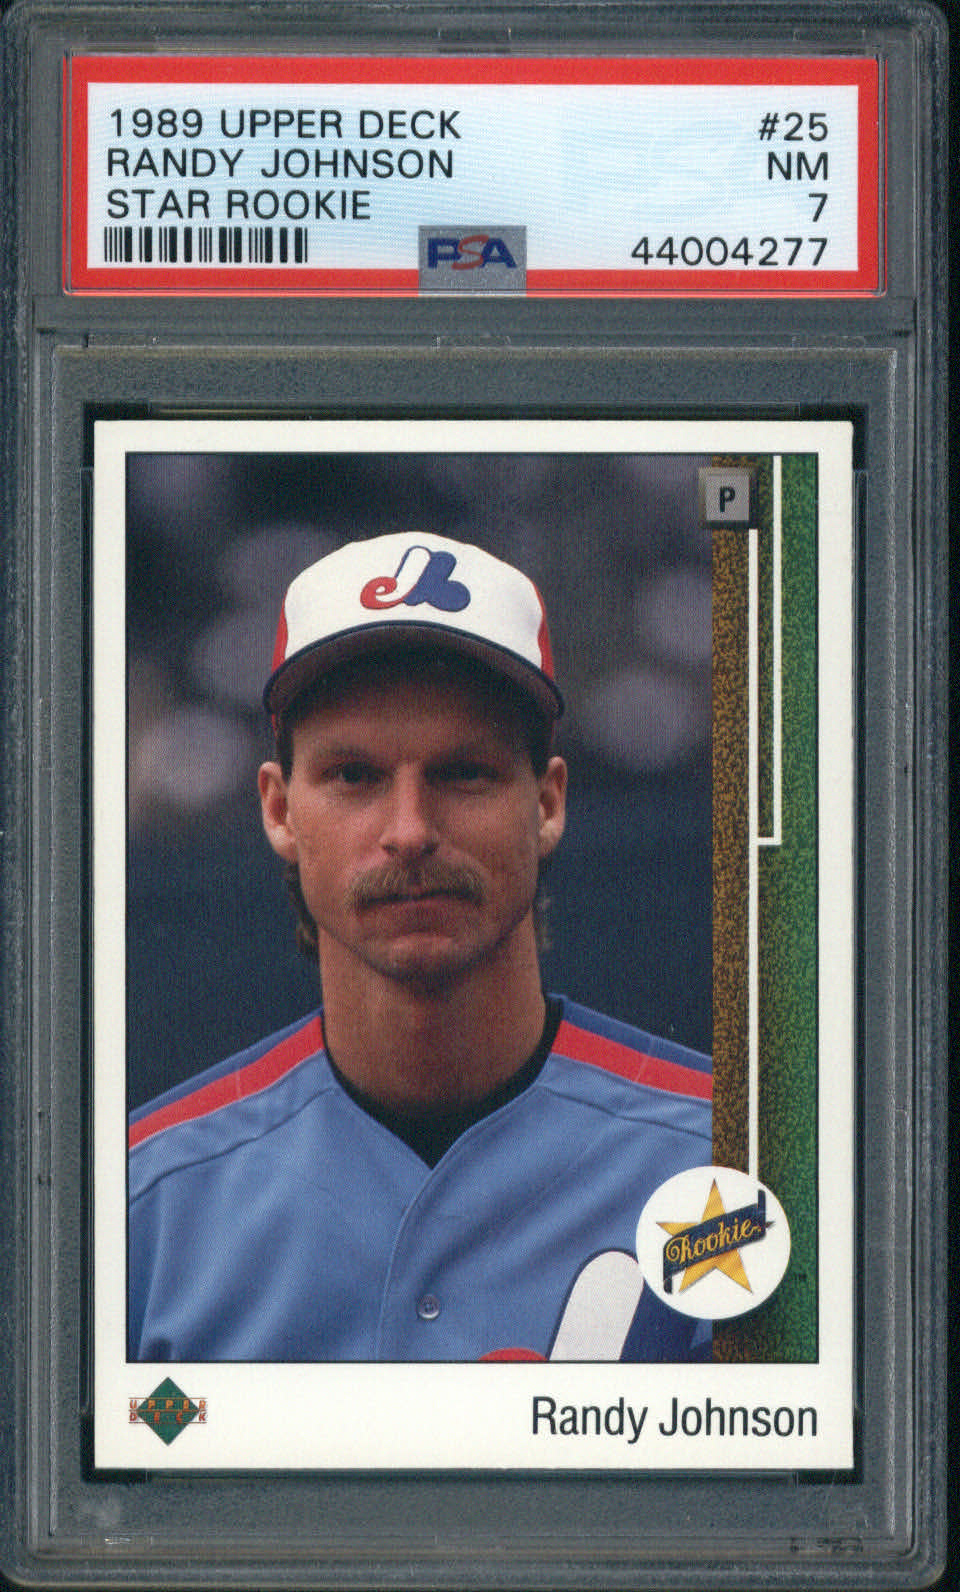 1989 Upper Deck Star Rookie #25 Randy Johnson PSA 7